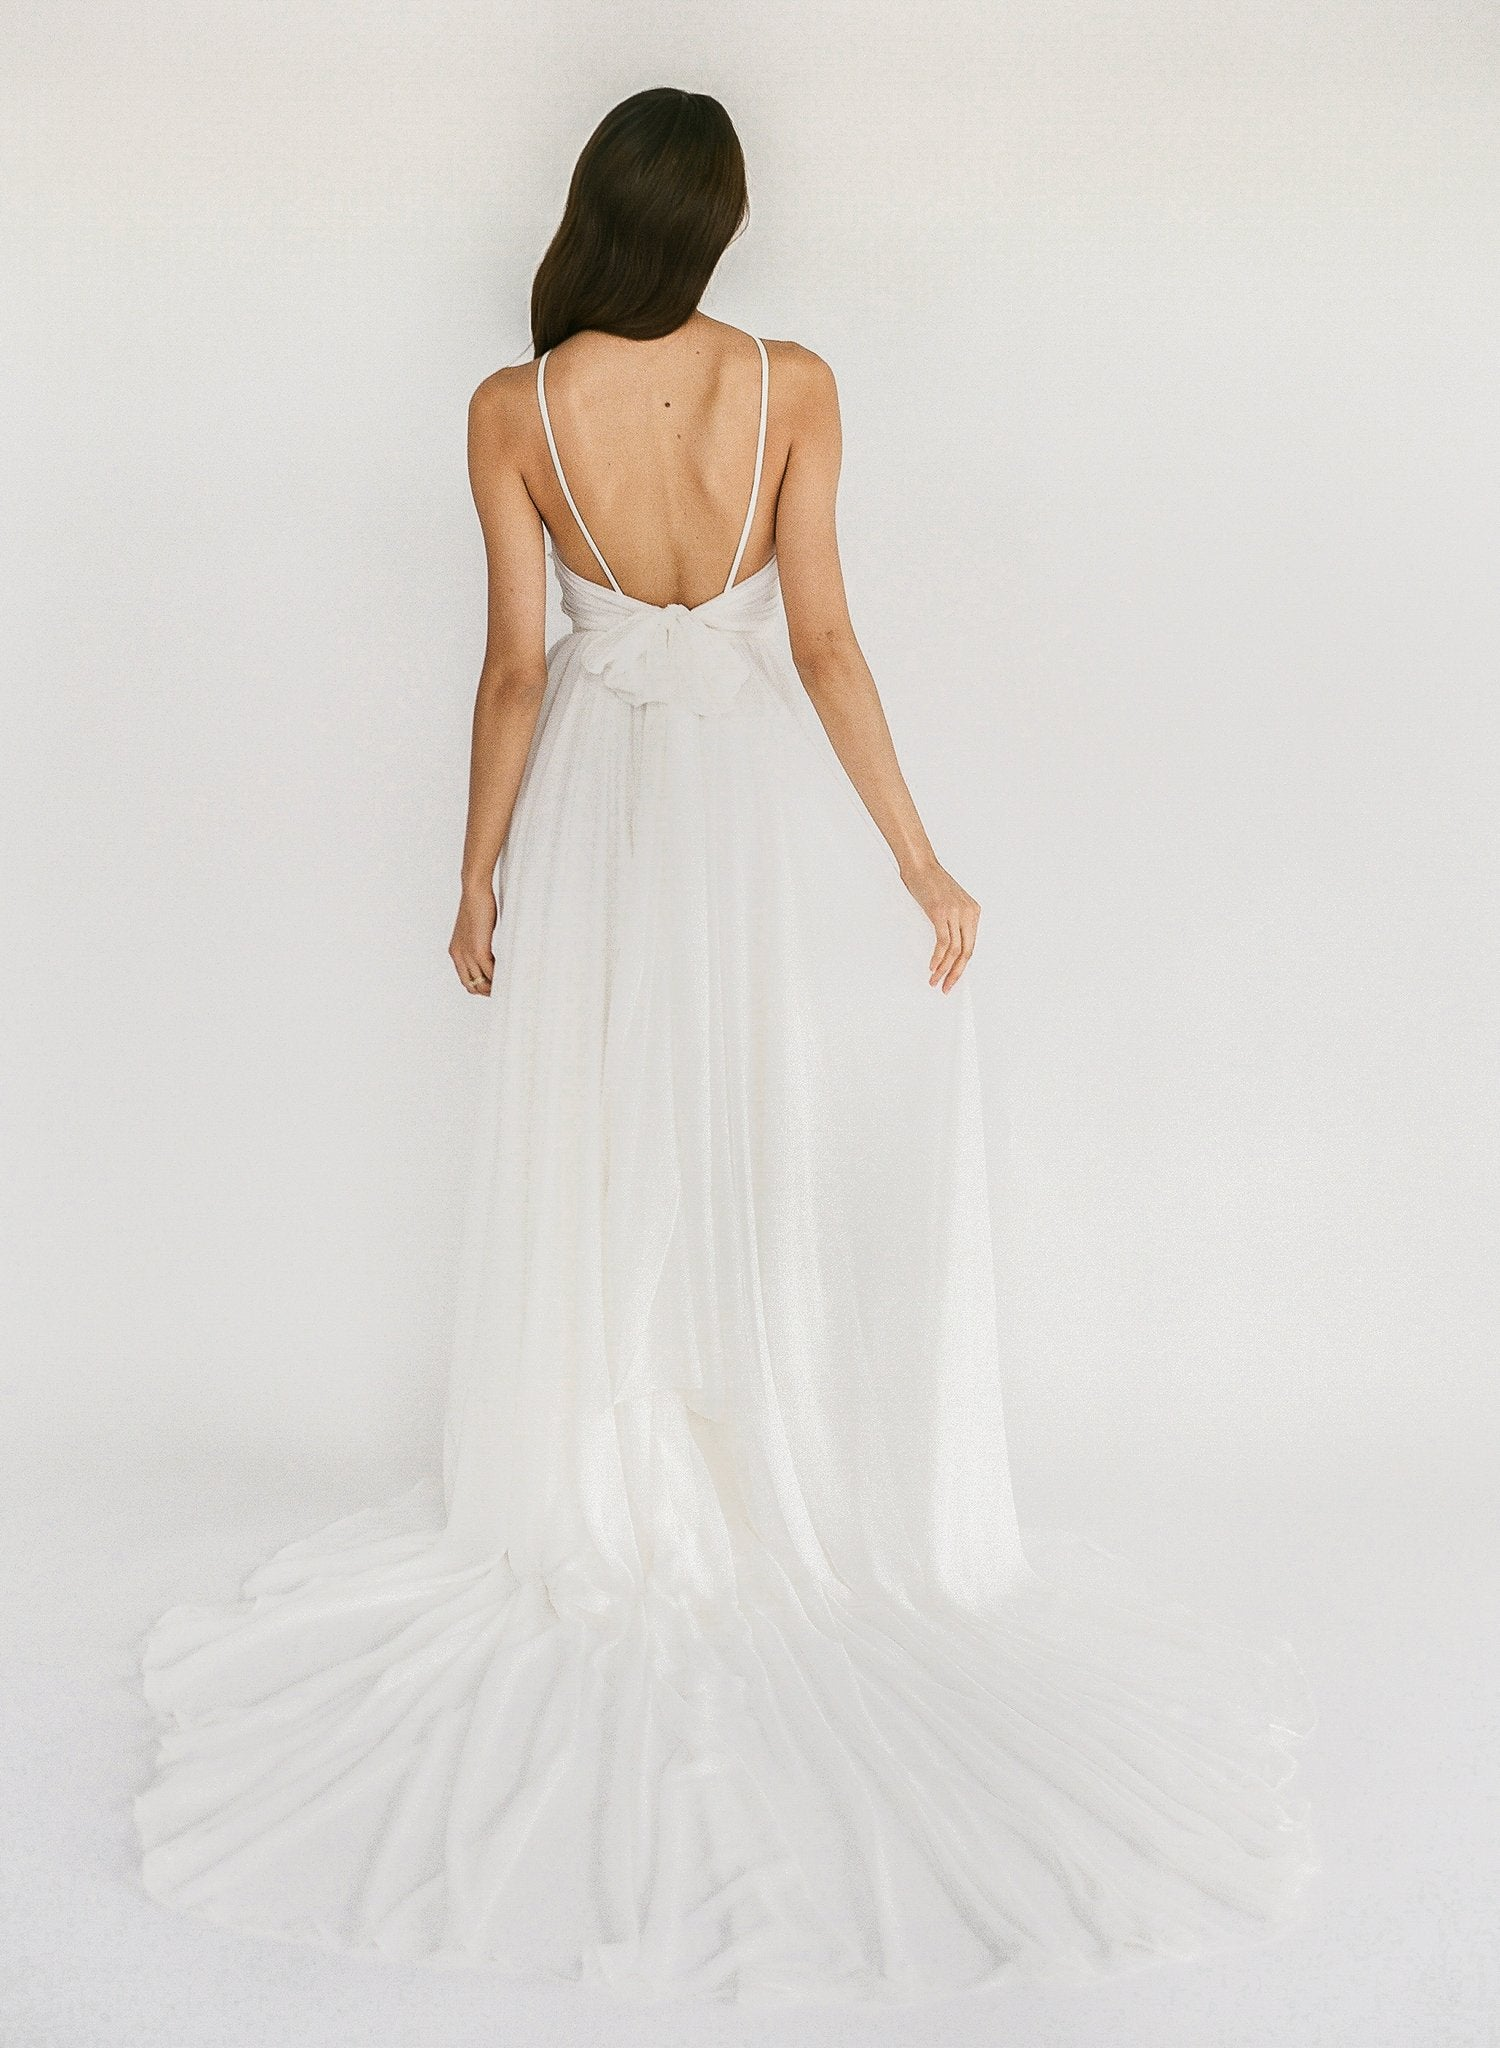 A high neck beach wedding dress with a low back, chiffon ties, and a flowy skirt